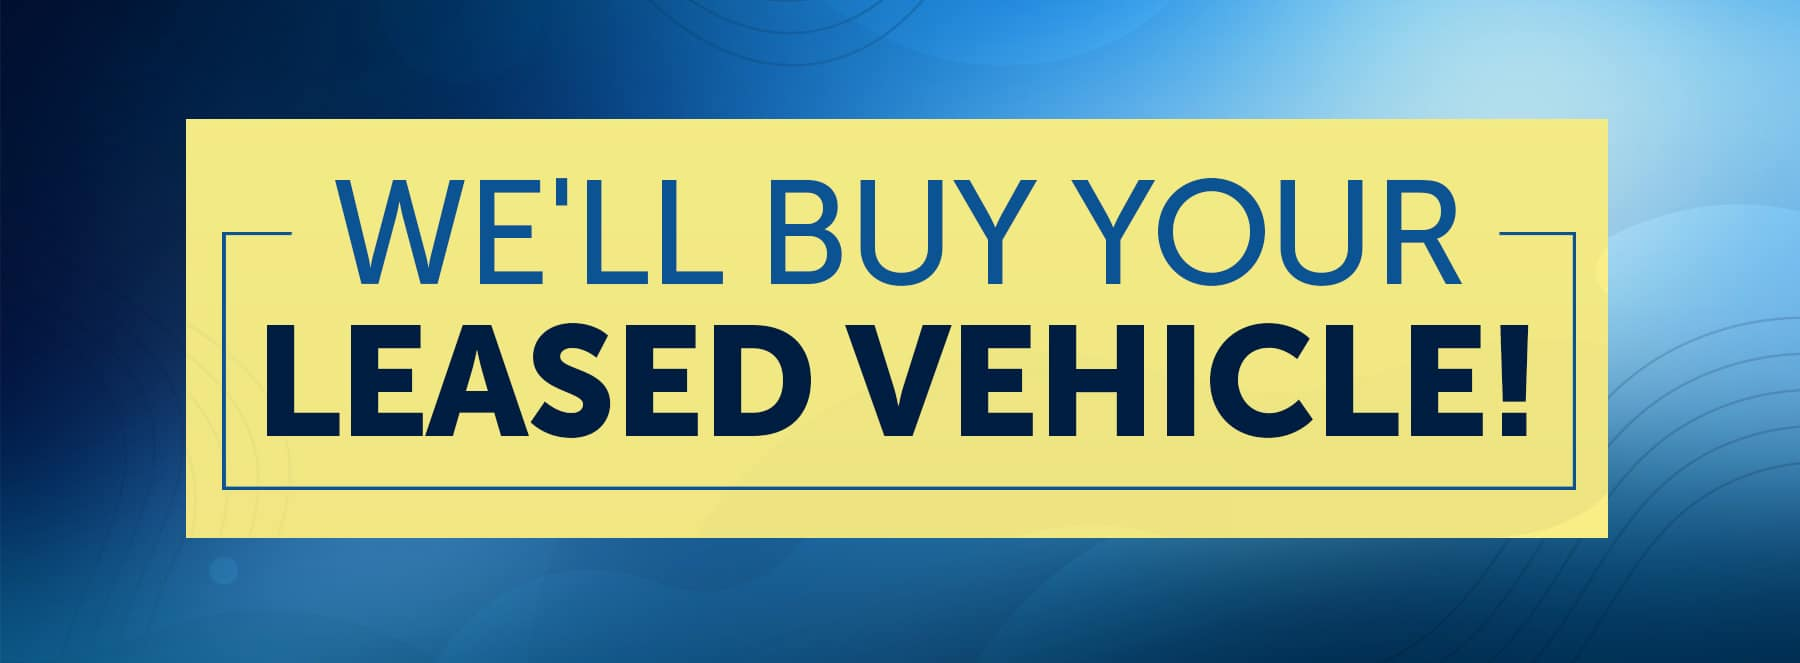 We'll Buy Your Leased Vehicle